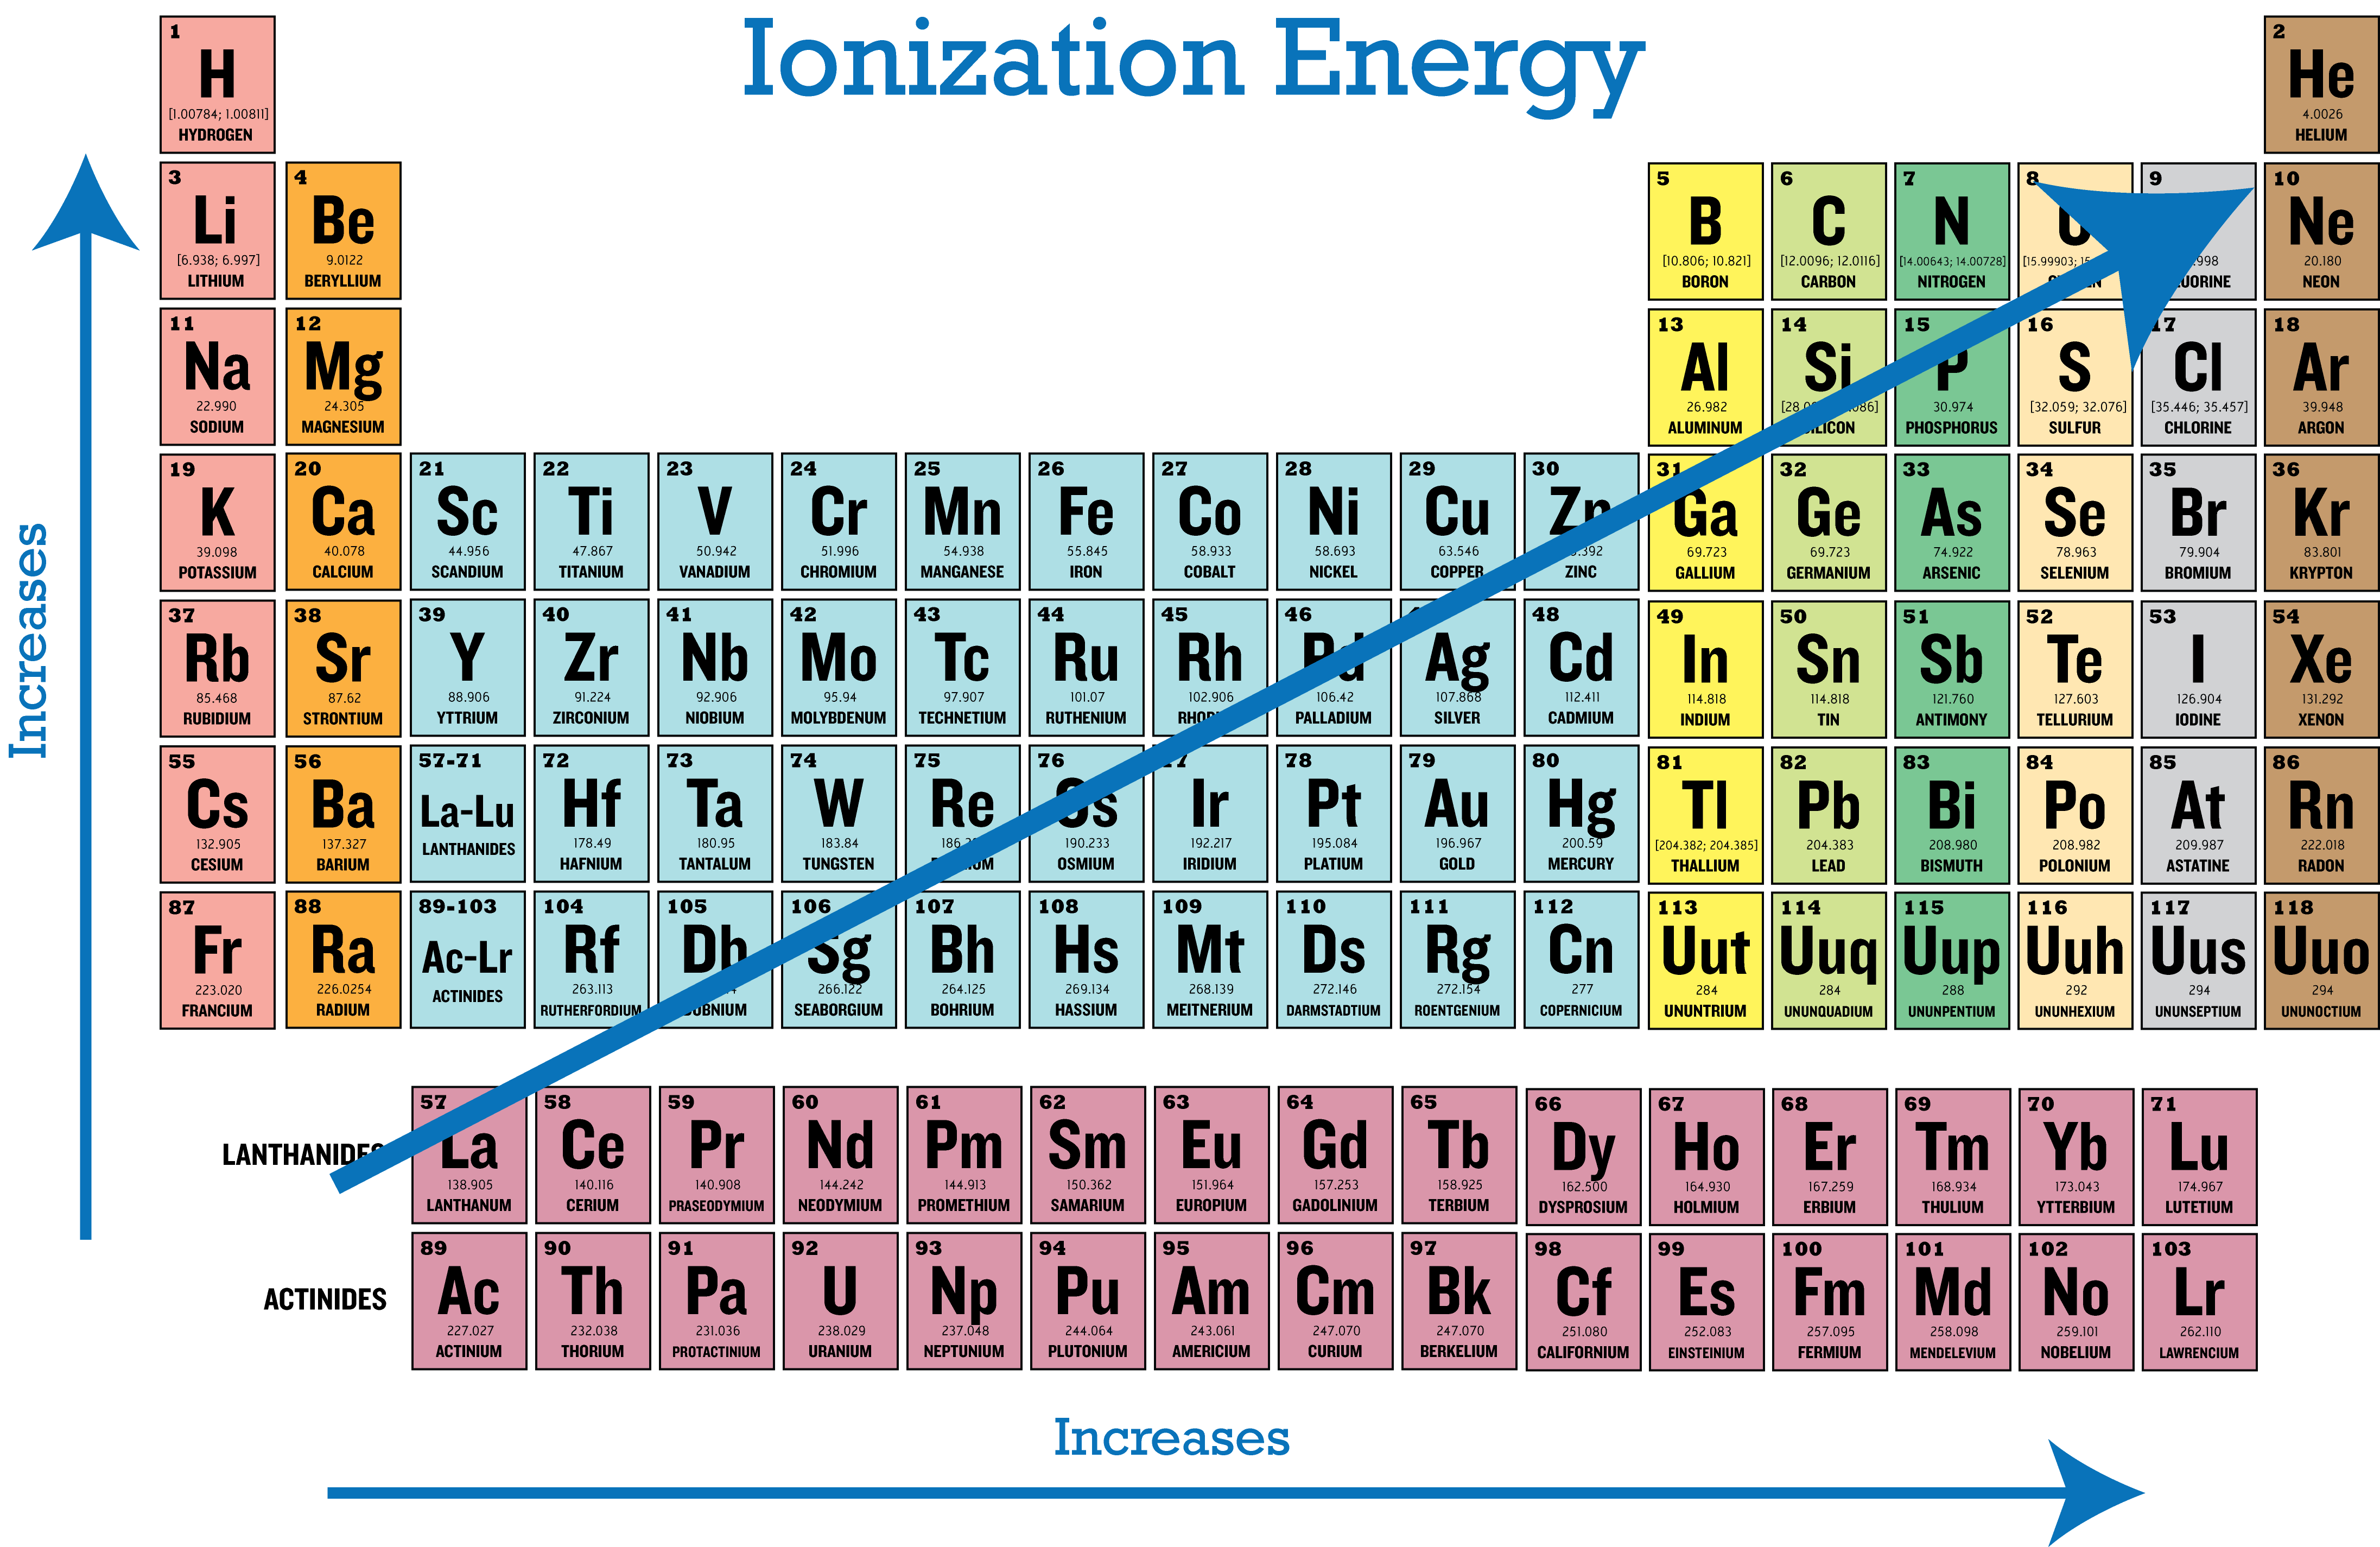 Periodic Trends in Ion...